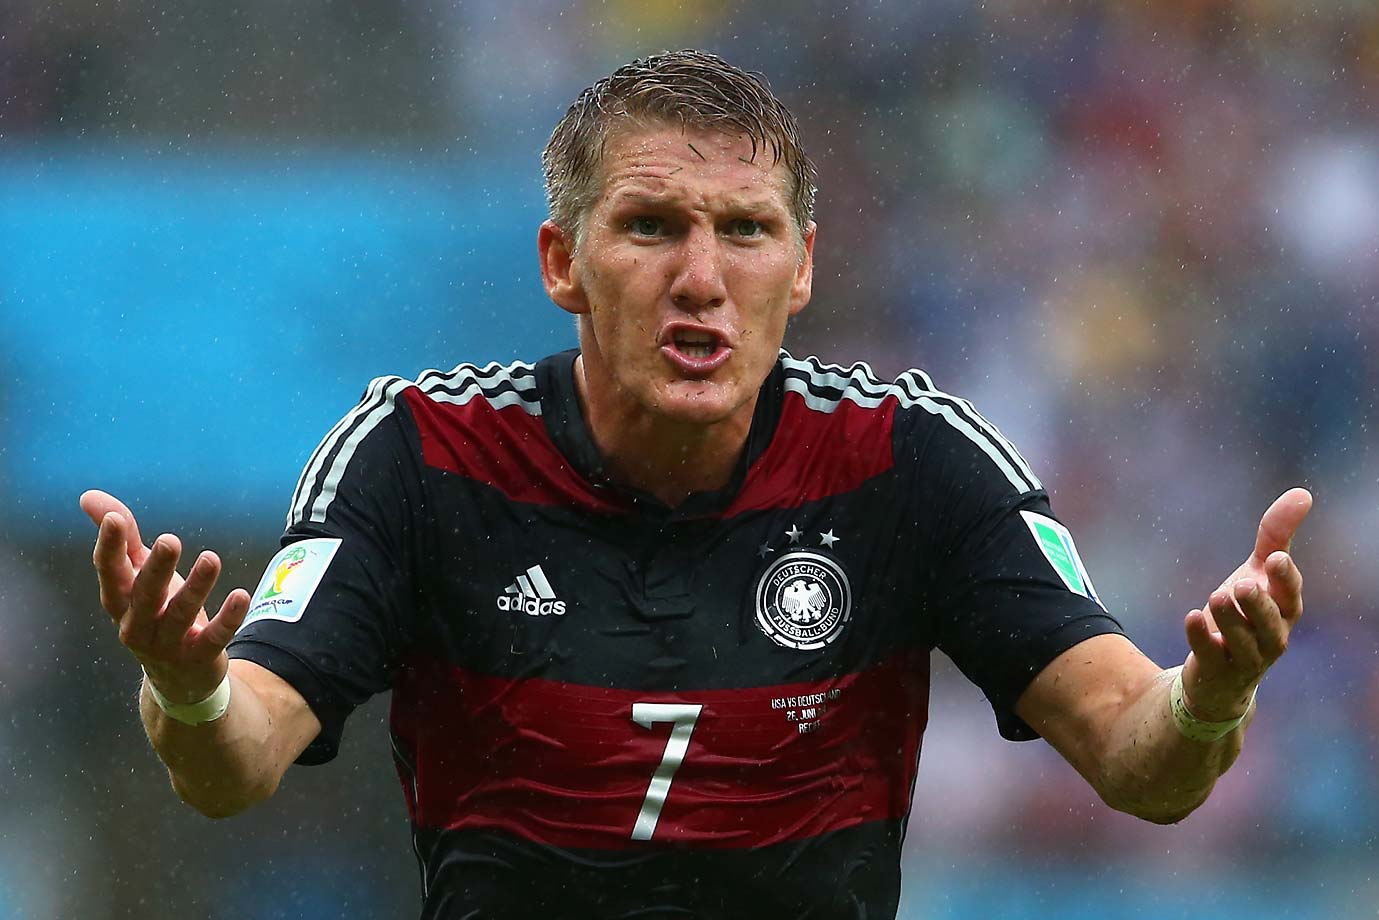 Bastian Schweinsteiger of Germany states his case while looking for a call to go his way.